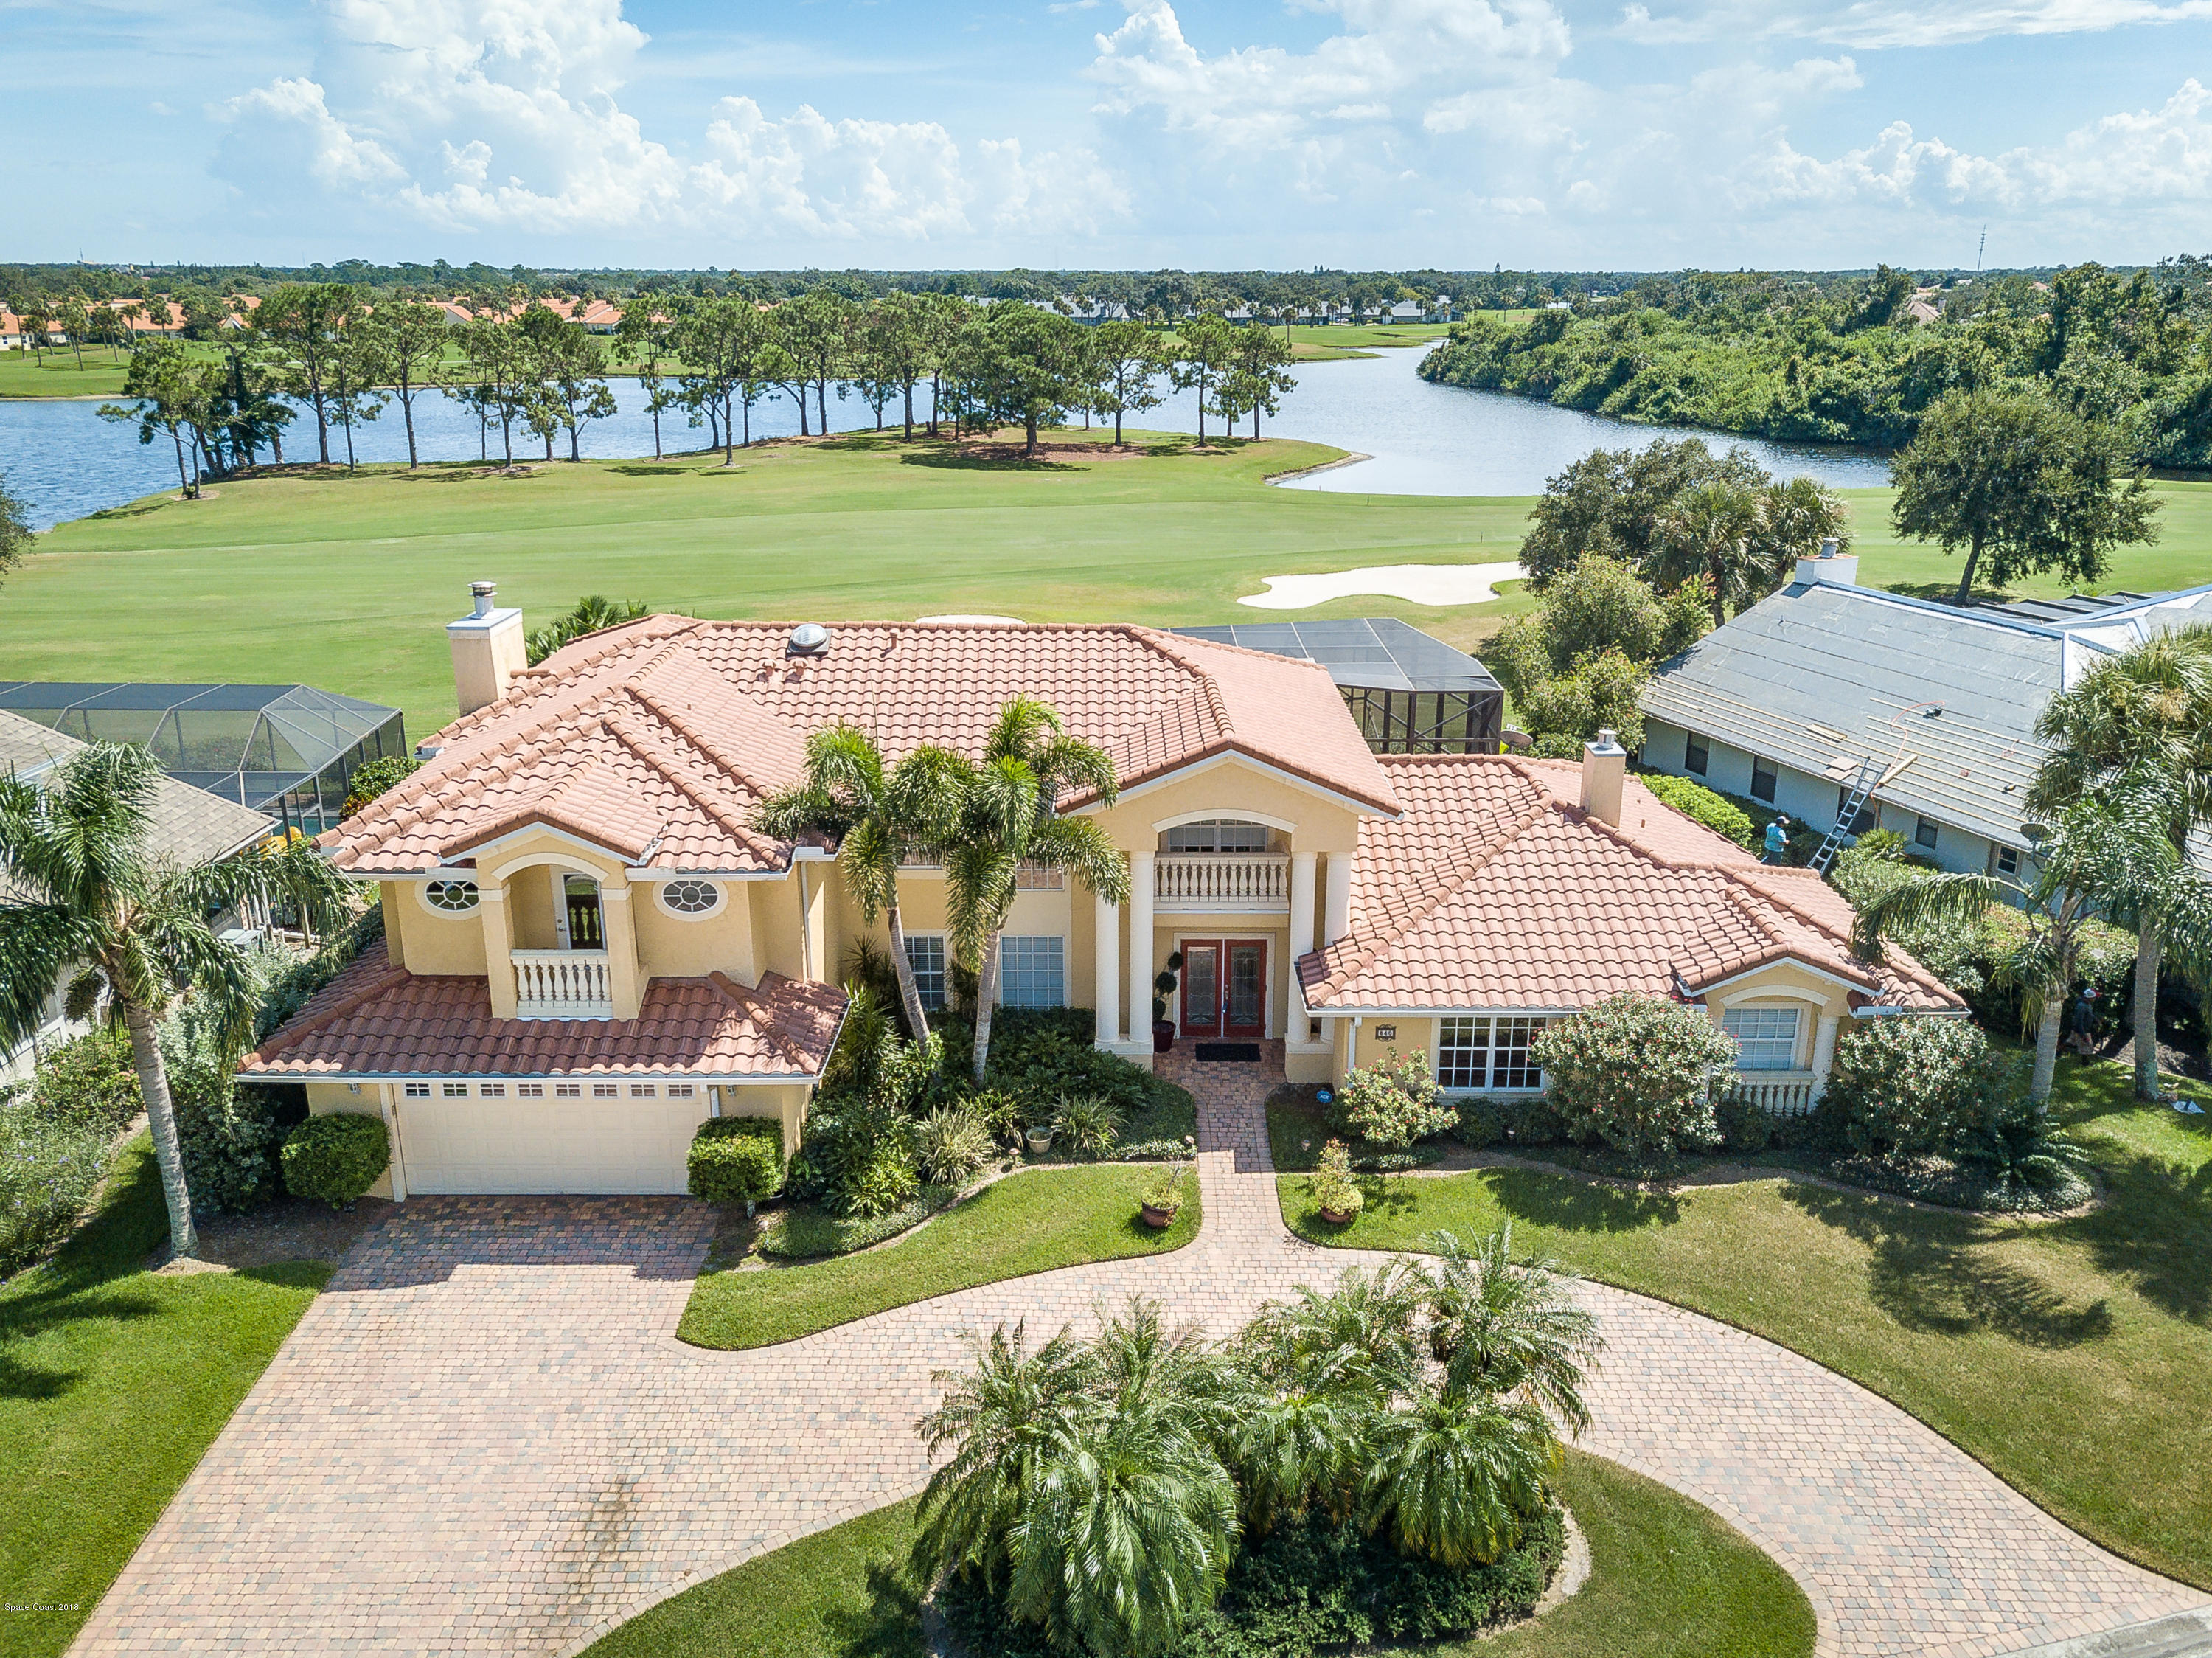 Single Family Home for Sale at 840 Kerry Downs 840 Kerry Downs Melbourne, Florida 32940 United States